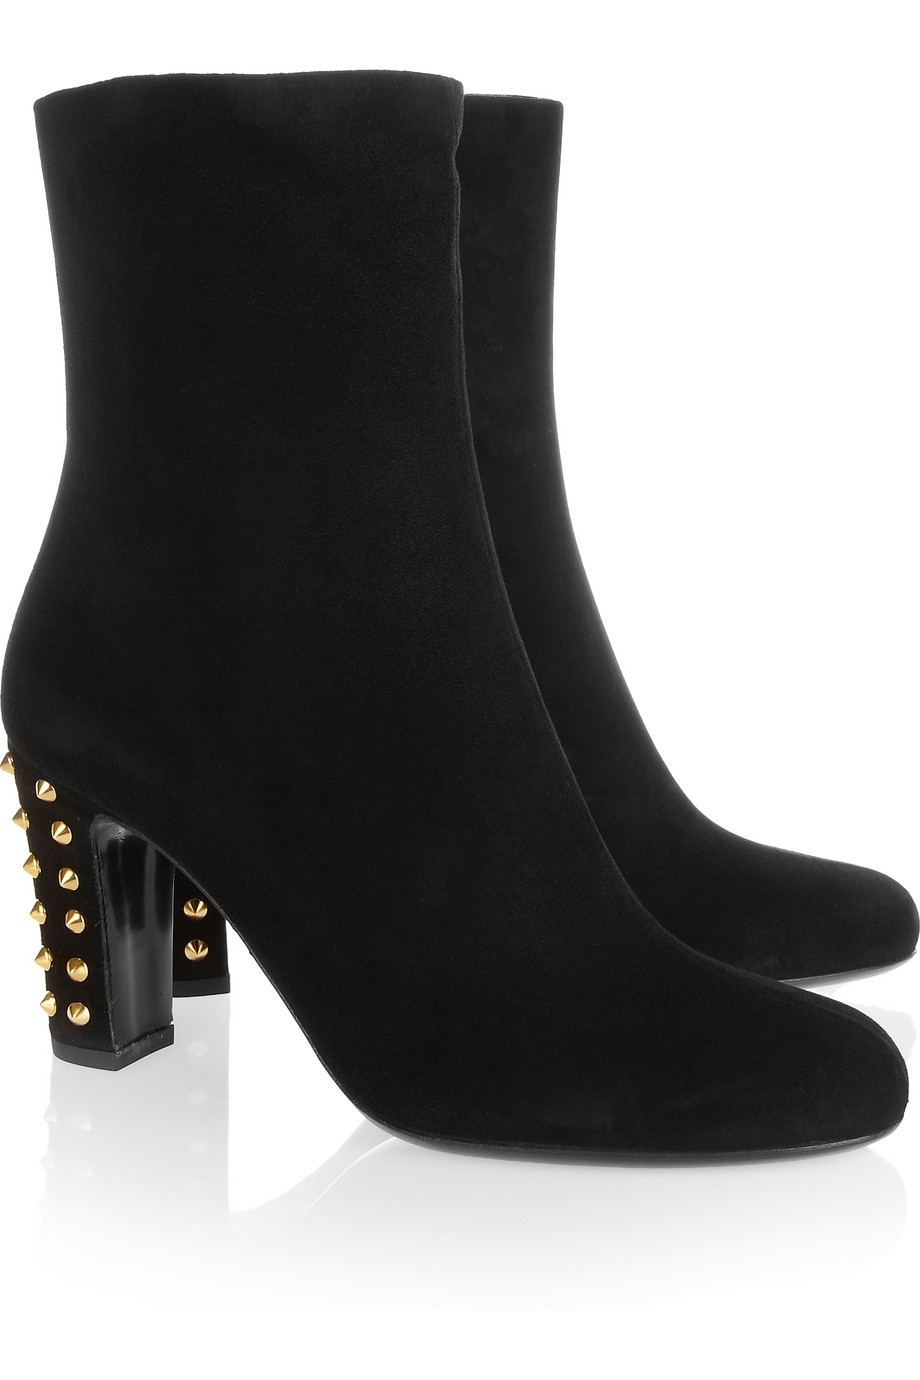 gucci studded suede boots in black lyst